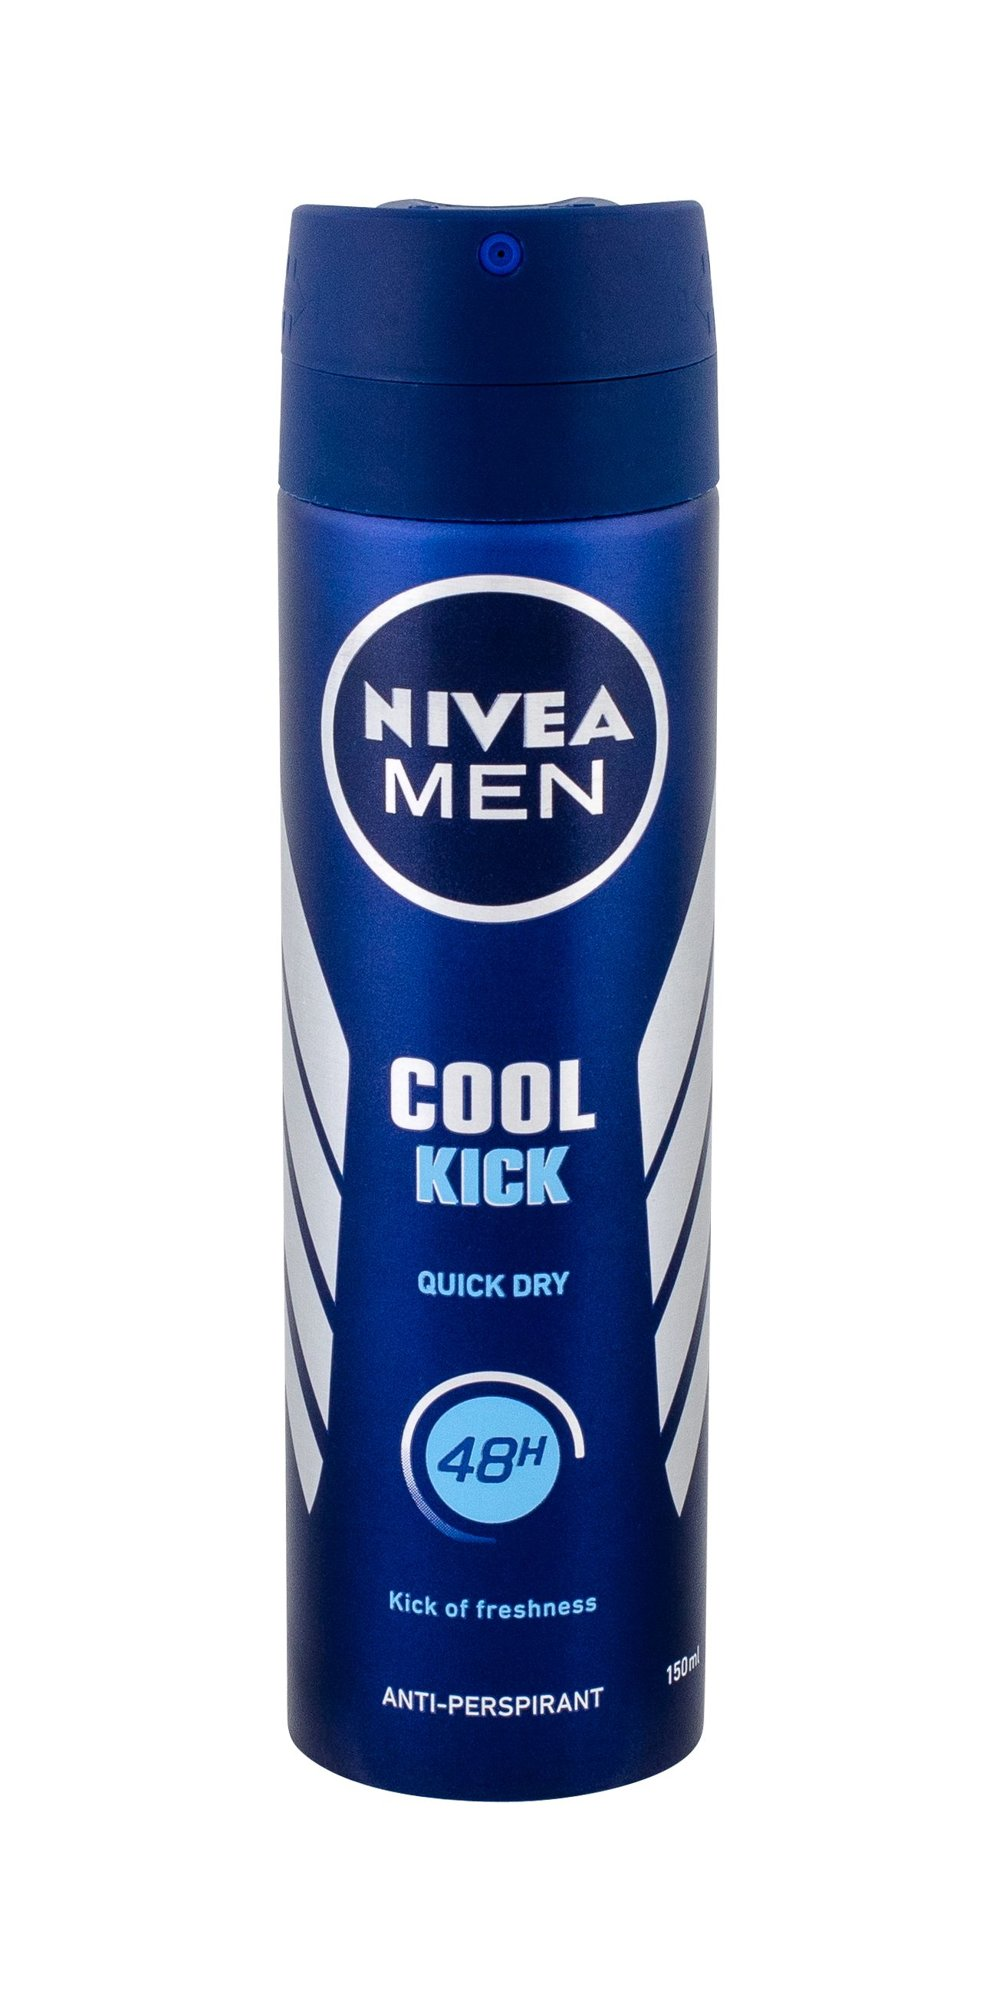 Nivea Men Cool Kick Cosmetic 150ml